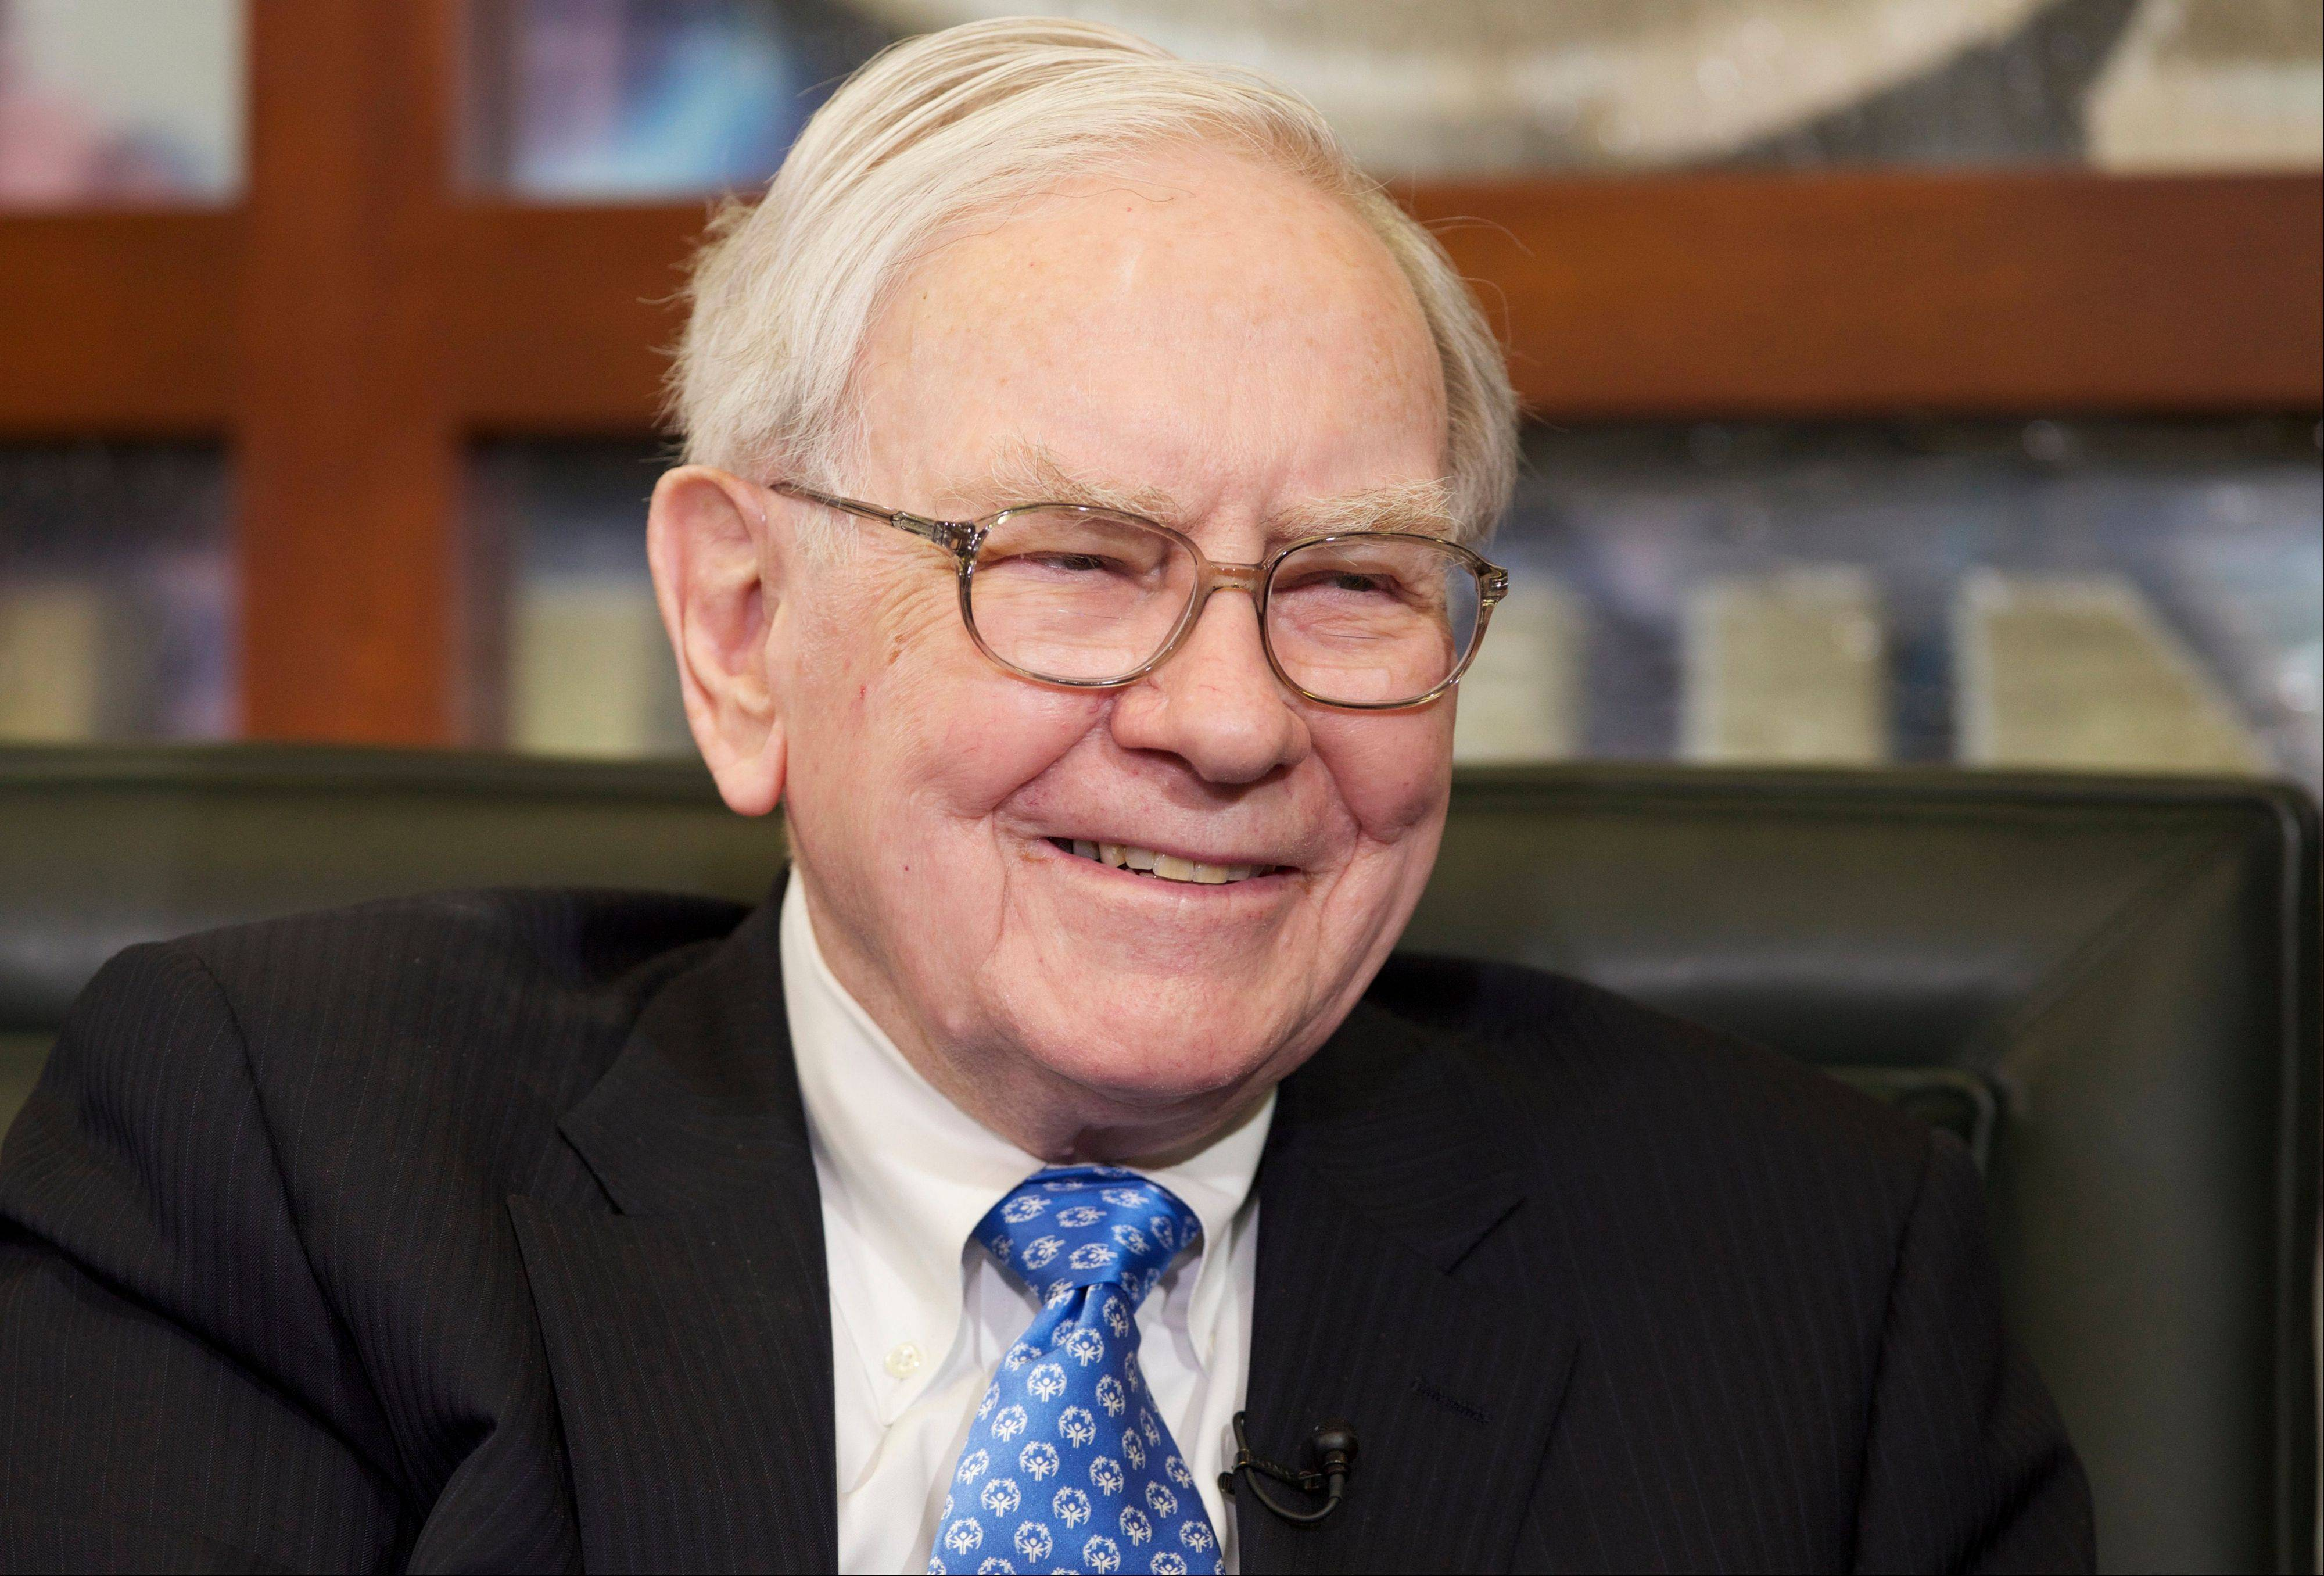 Associated Press/May 6, 2013 Warren Buffett smiles during a television interview in Omaha, Neb.